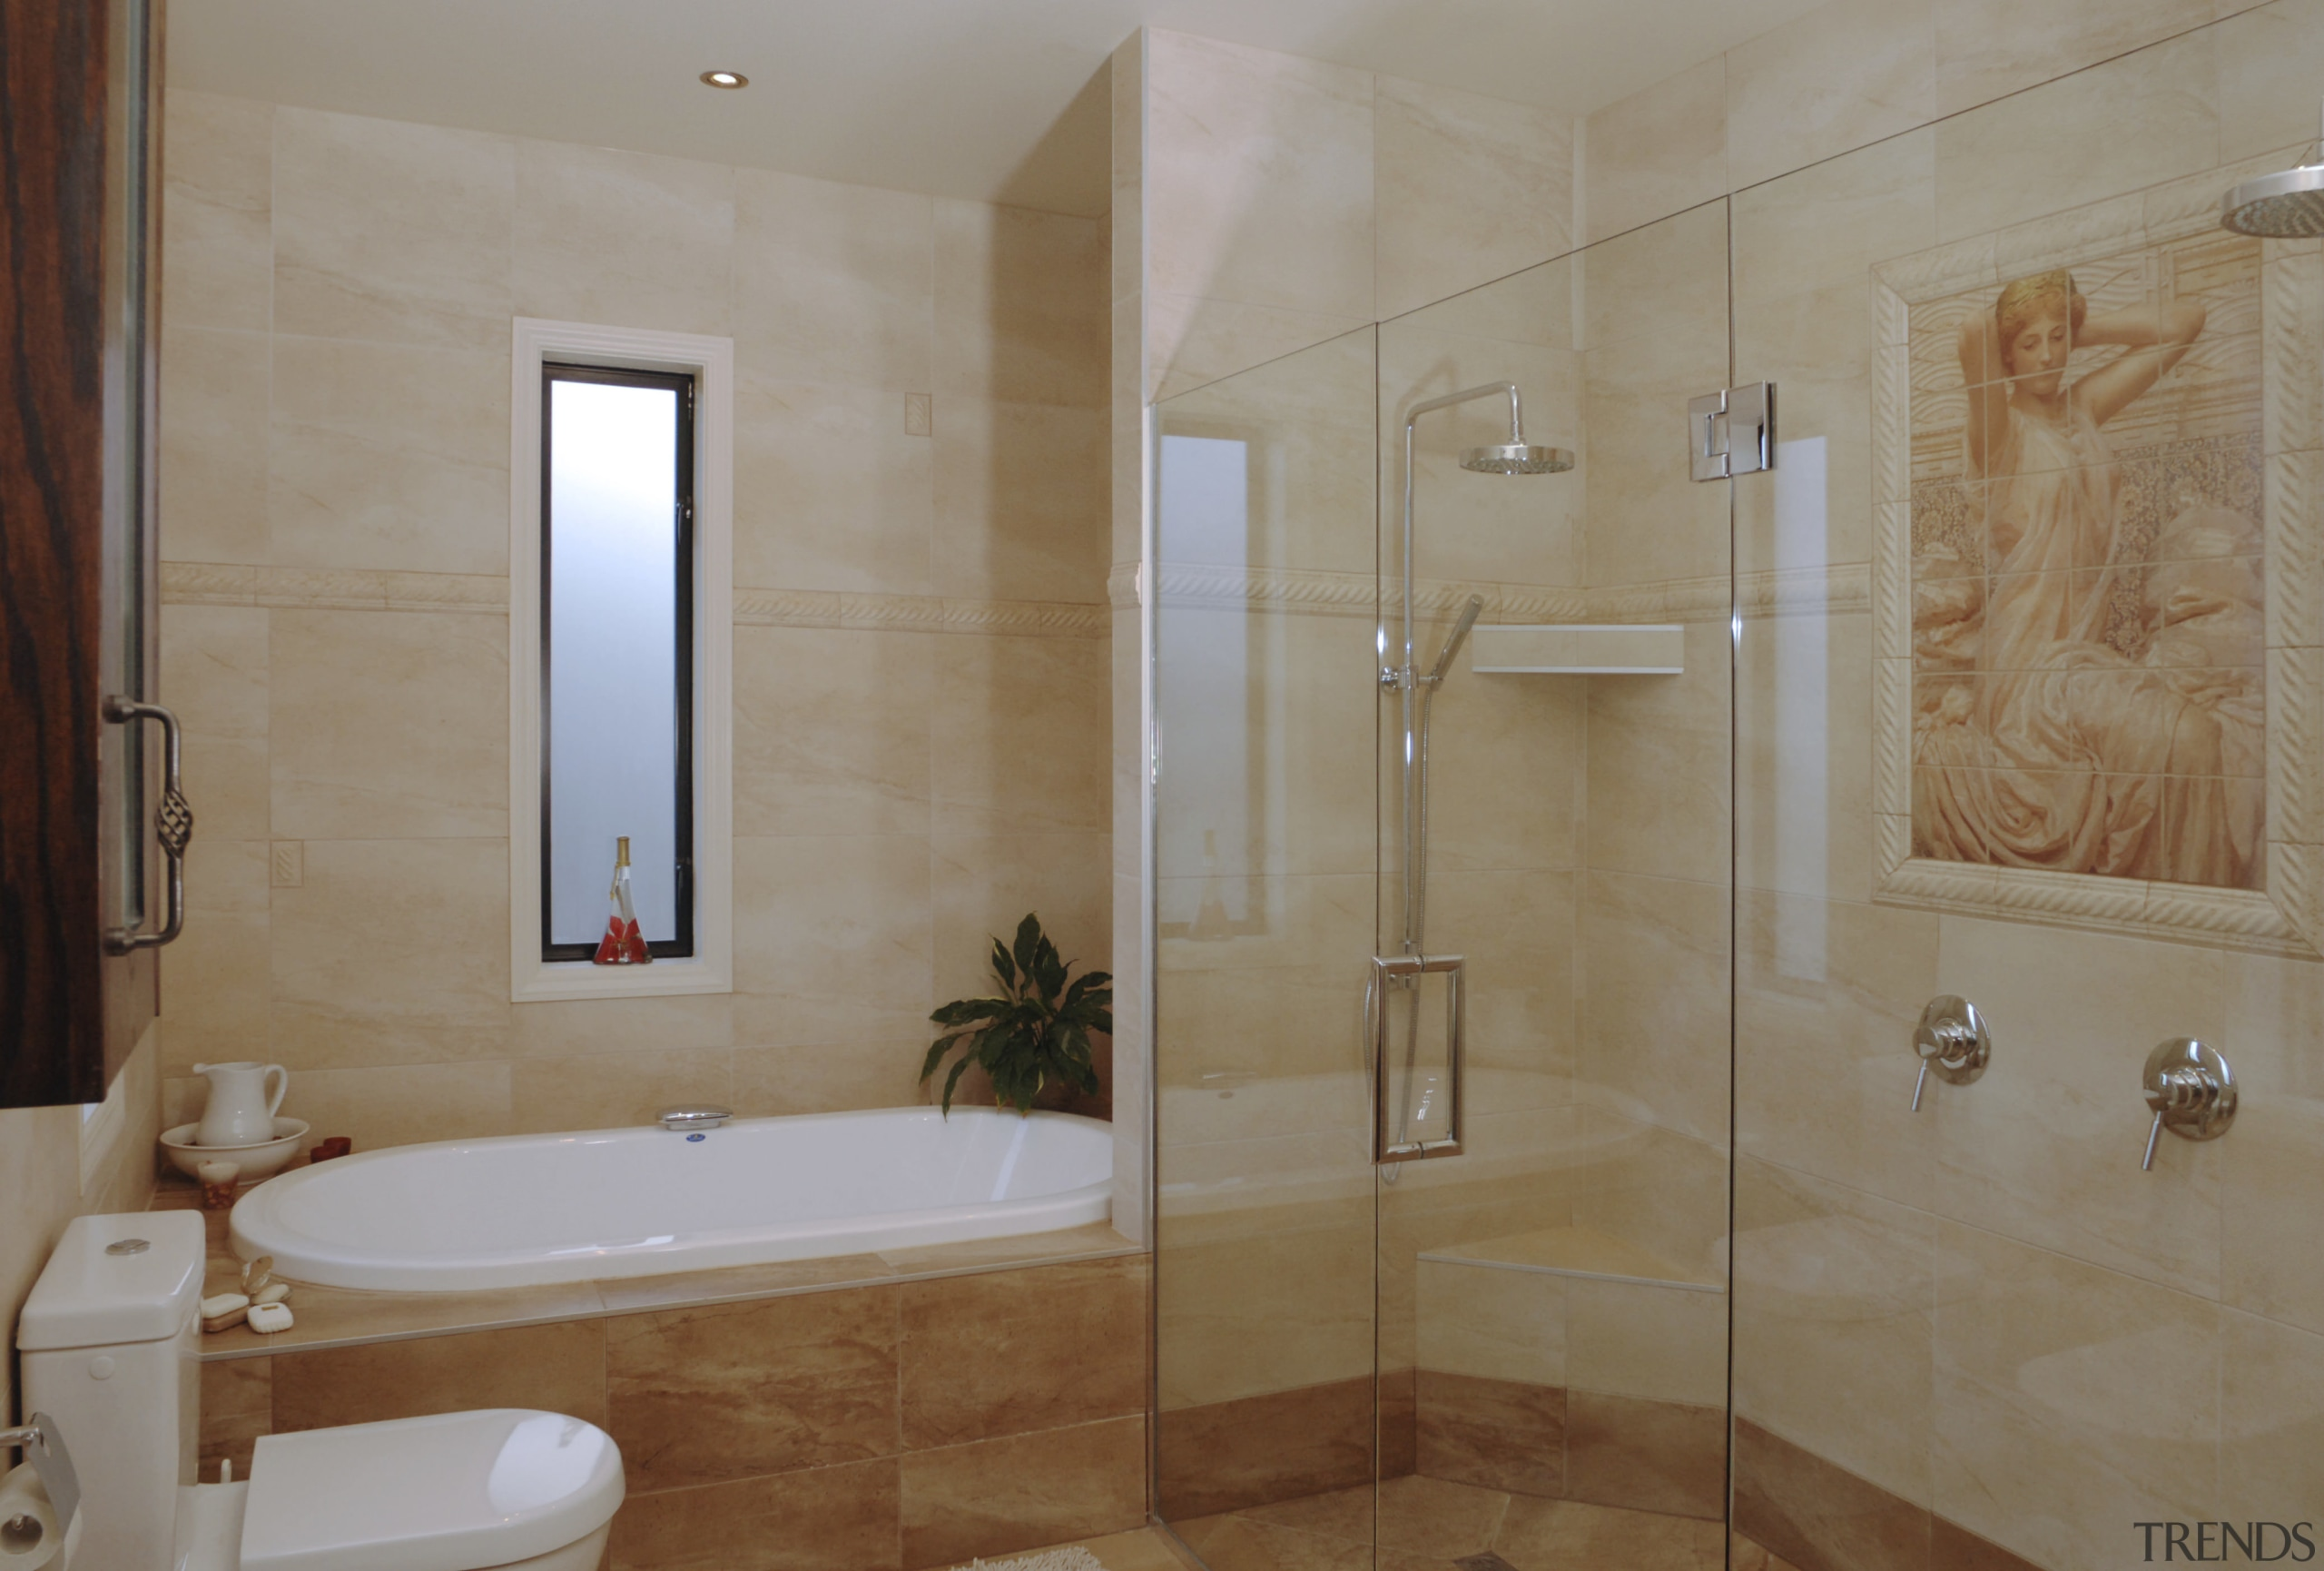 A view of a home designed by MF bathroom, estate, floor, flooring, home, interior design, plumbing fixture, property, real estate, room, tile, wall, gray, brown